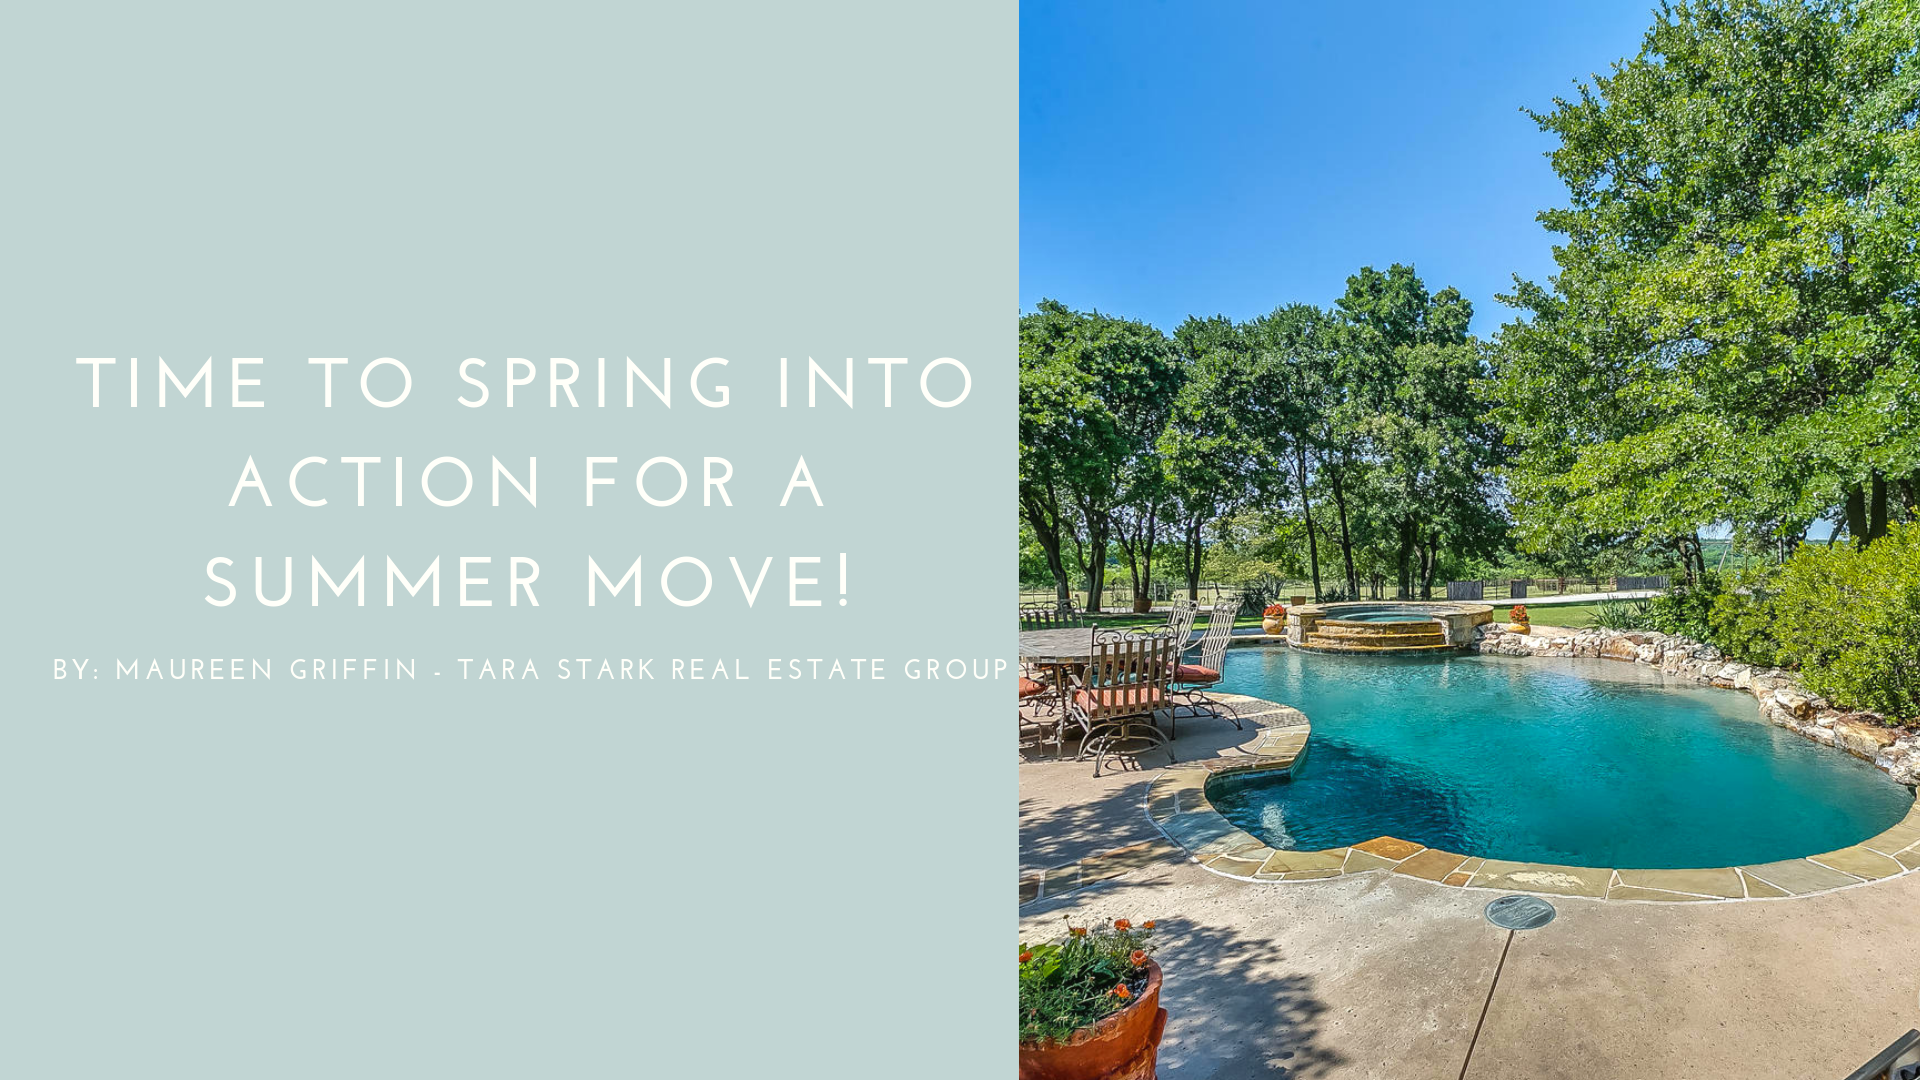 Time to Spring into Action for a Summer Move!